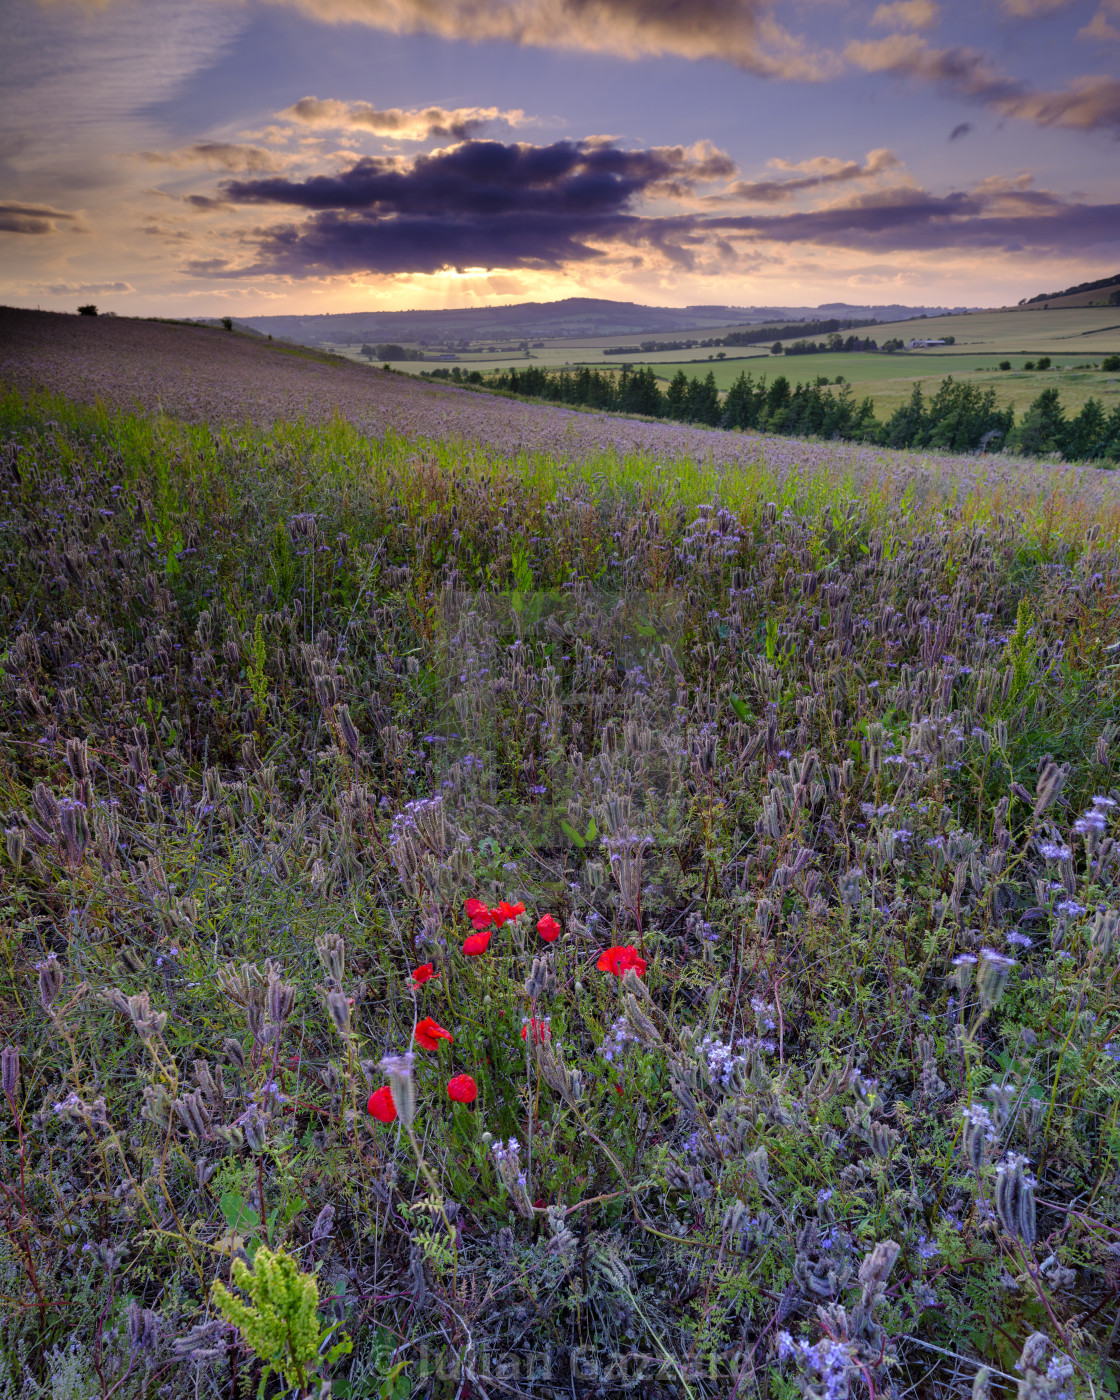 """""""Sunset over thistles and poppies in the Meon Valley, Hampshire,"""" stock image"""